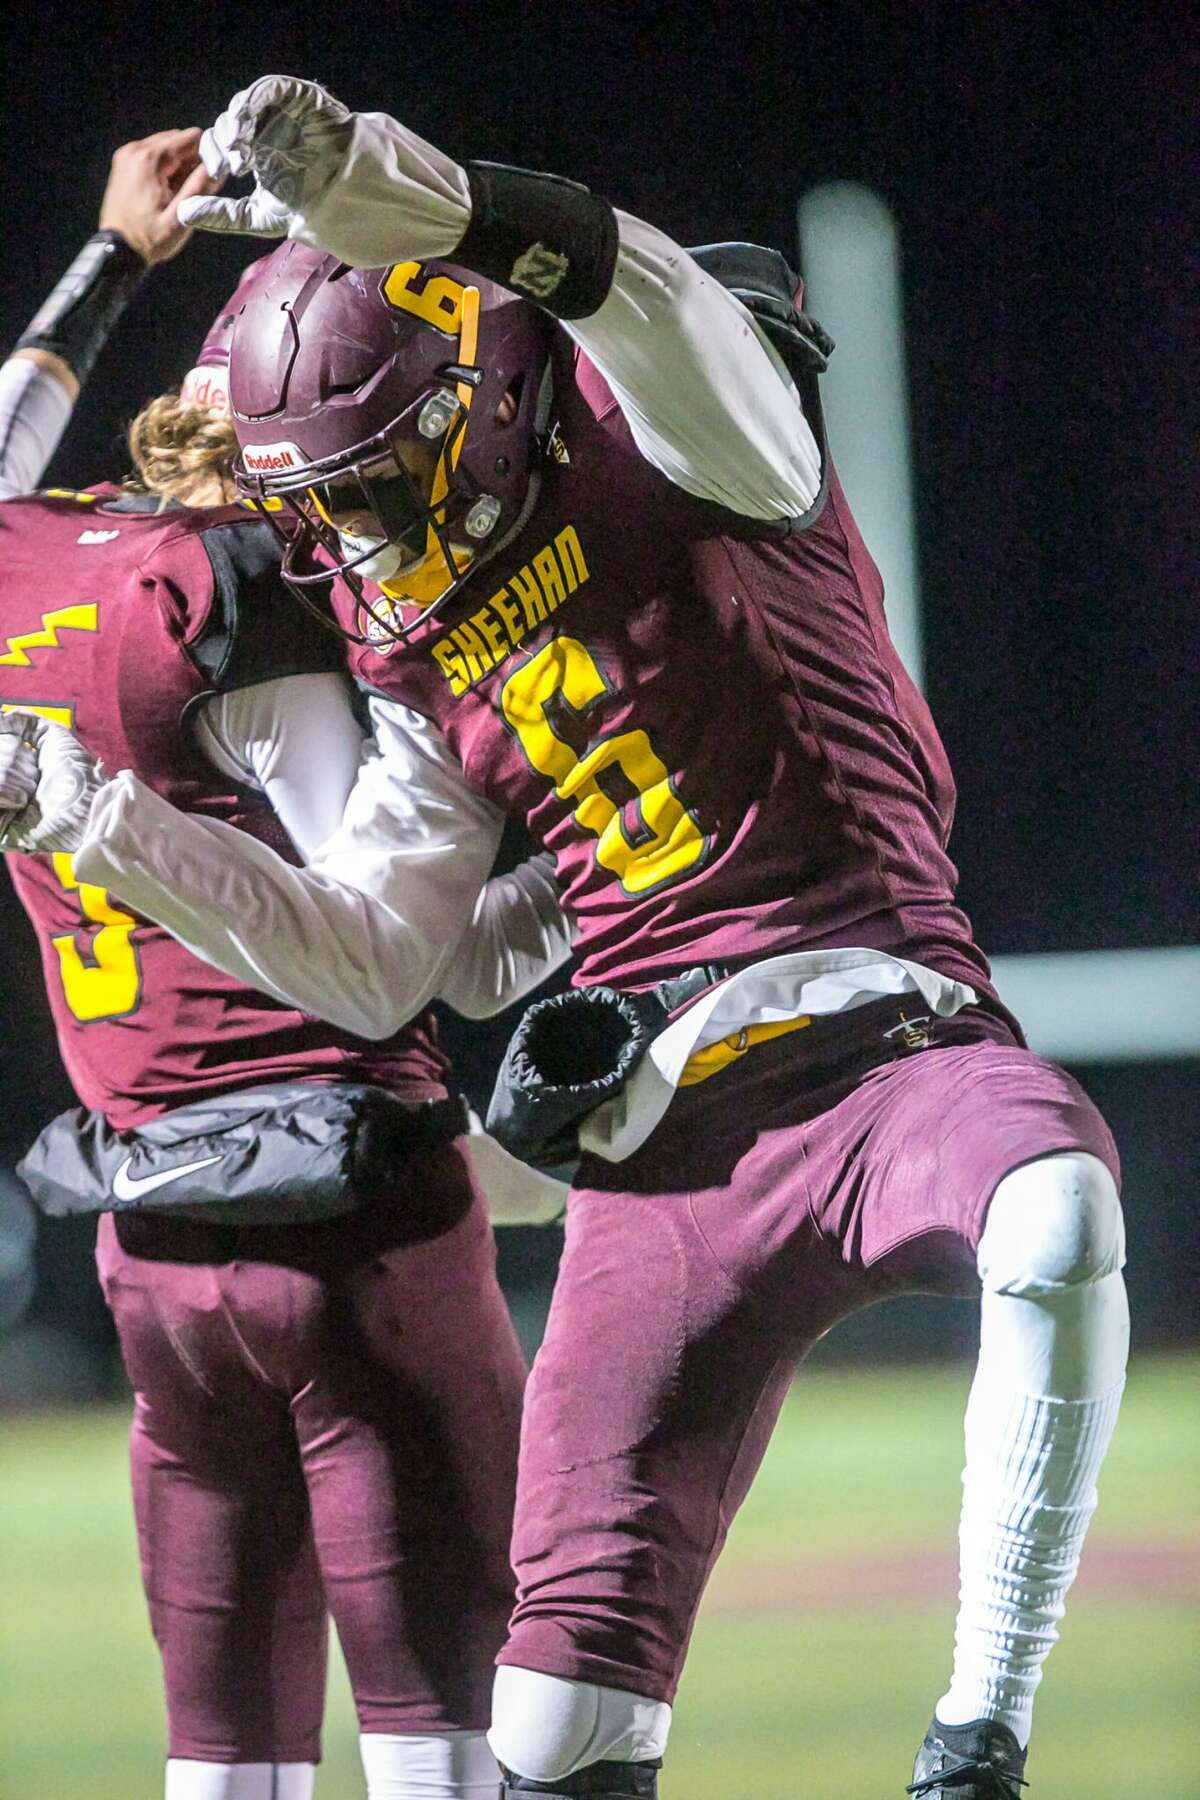 (John Vanacore/For Hearst Connecticut Media) Sheehan's Jake Smith celebrates his first half touchdown with Weston Terzi(3) during their CIAC Class M quarterfinal win Tuesday in Wallingford.